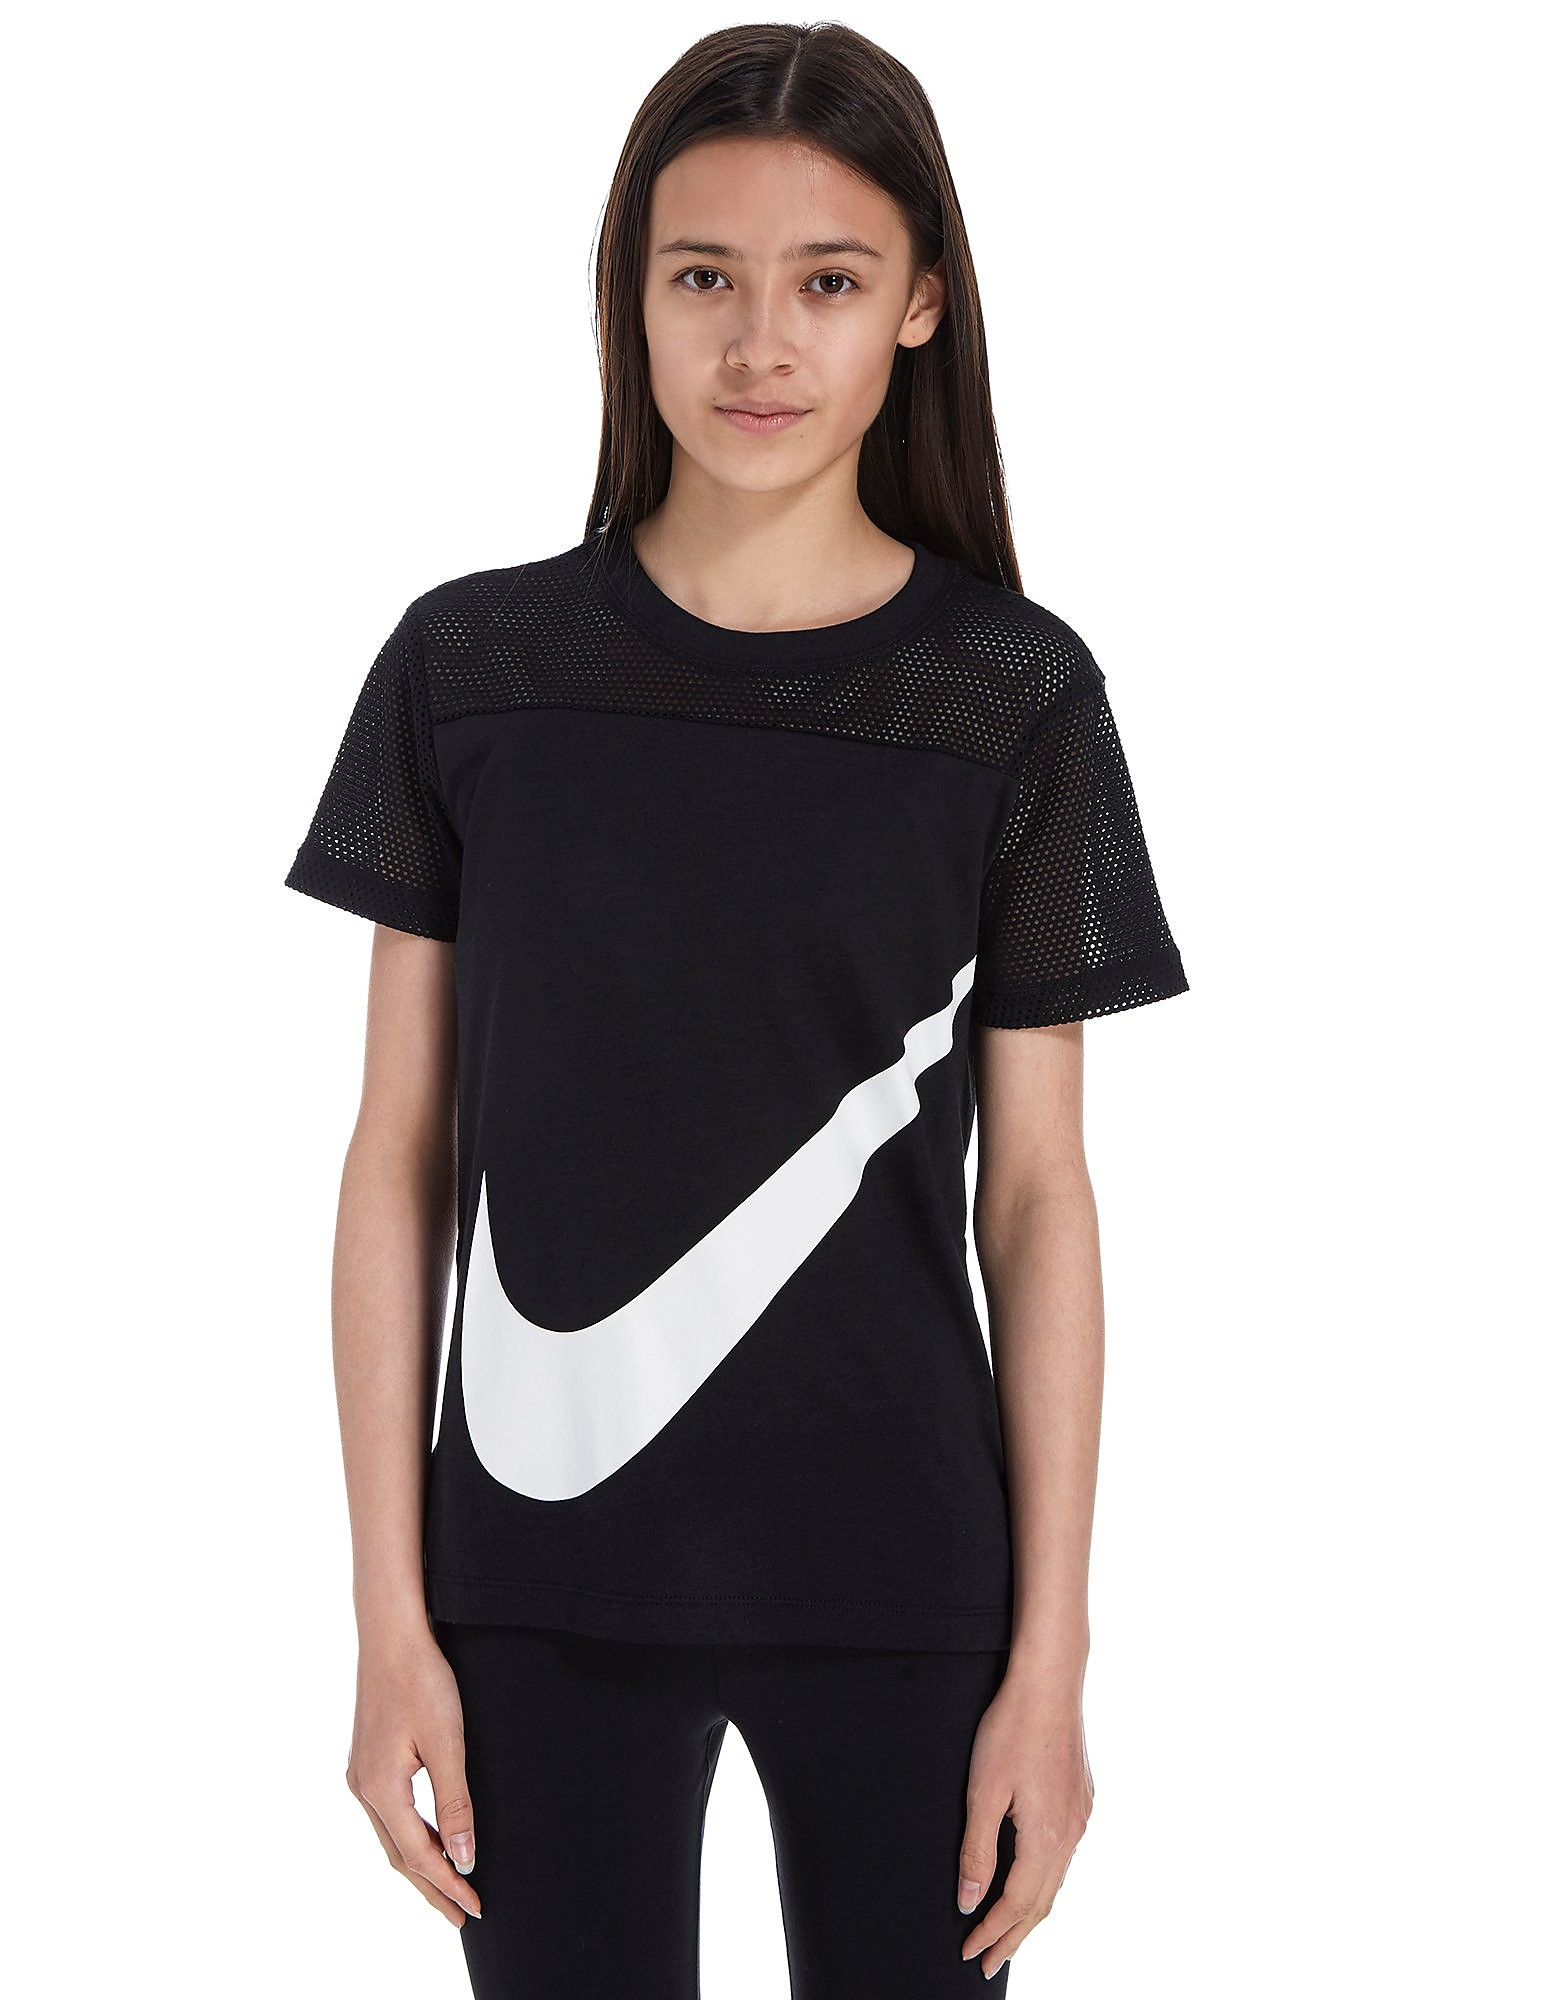 Nike Girls' Graphic T-Shirt Junior